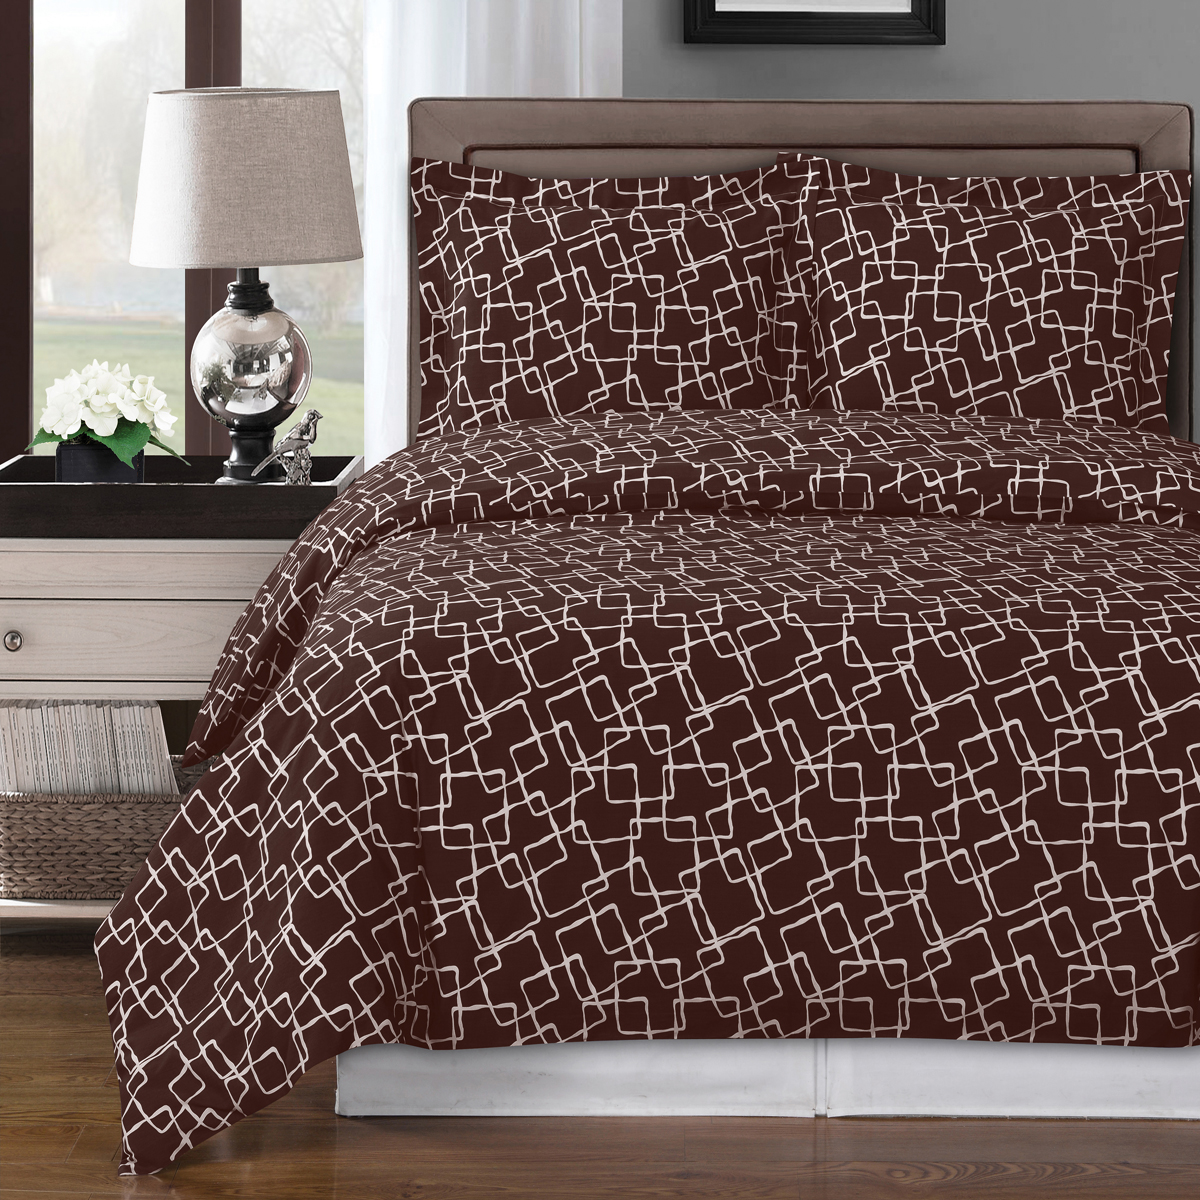 Eva Cotton Duvet Covers Set